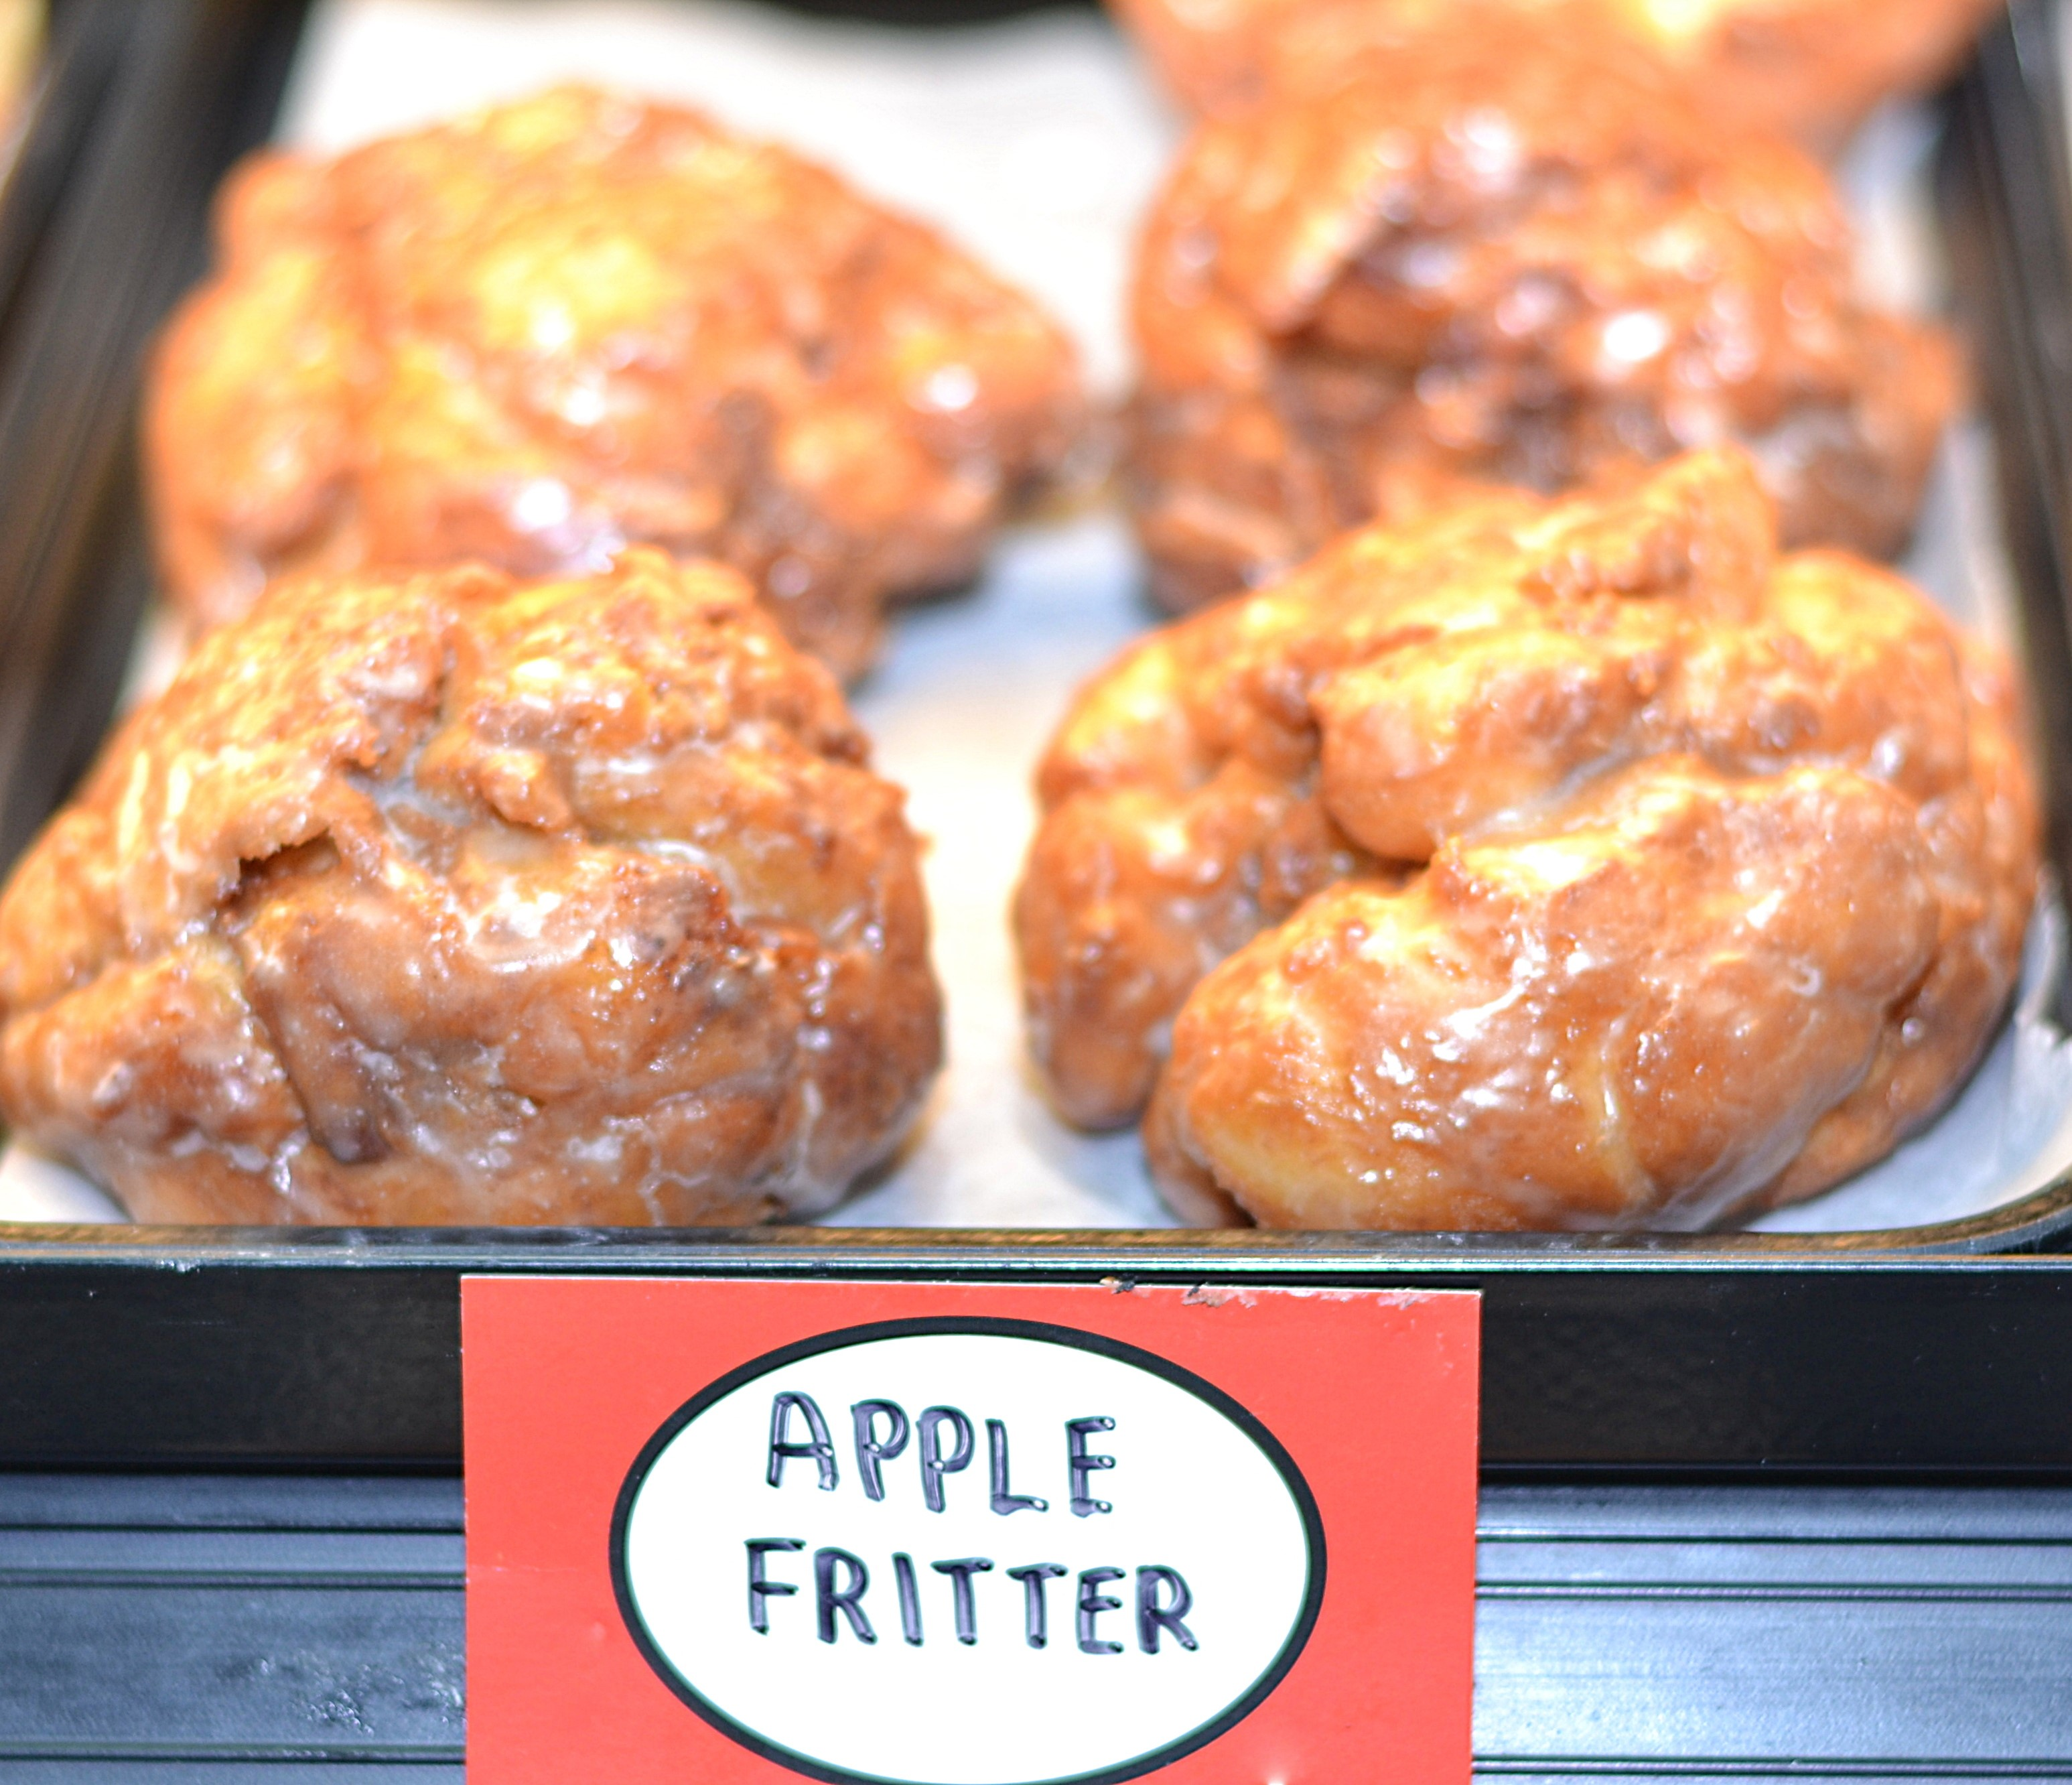 Our Famous Apple Fritters!